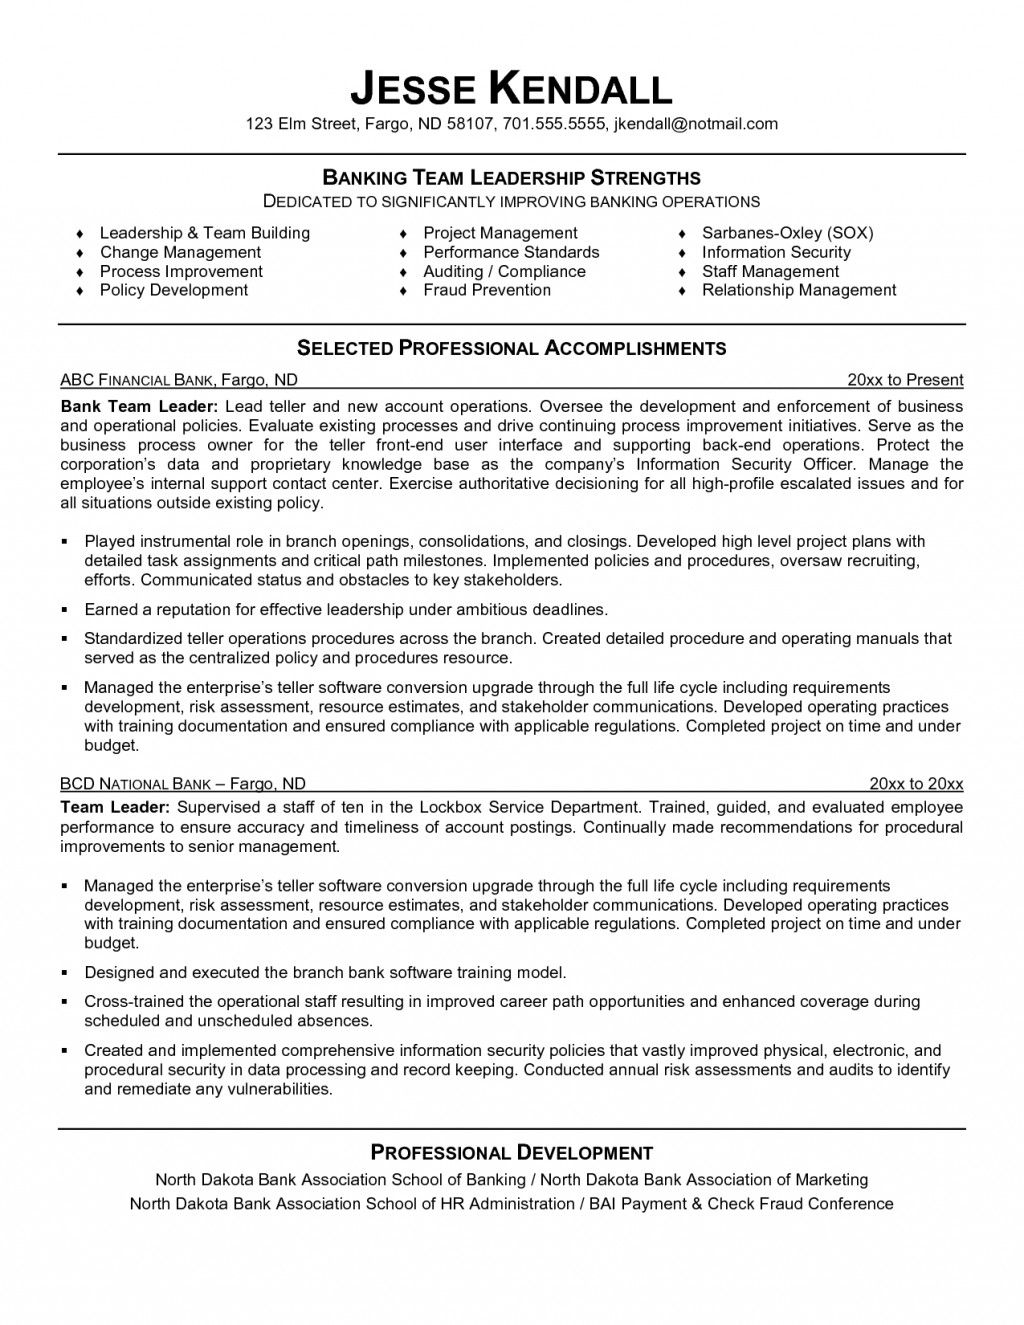 pin on resume examples leadership experience naukrigulf services review objective for Resume Leadership Experience Resume